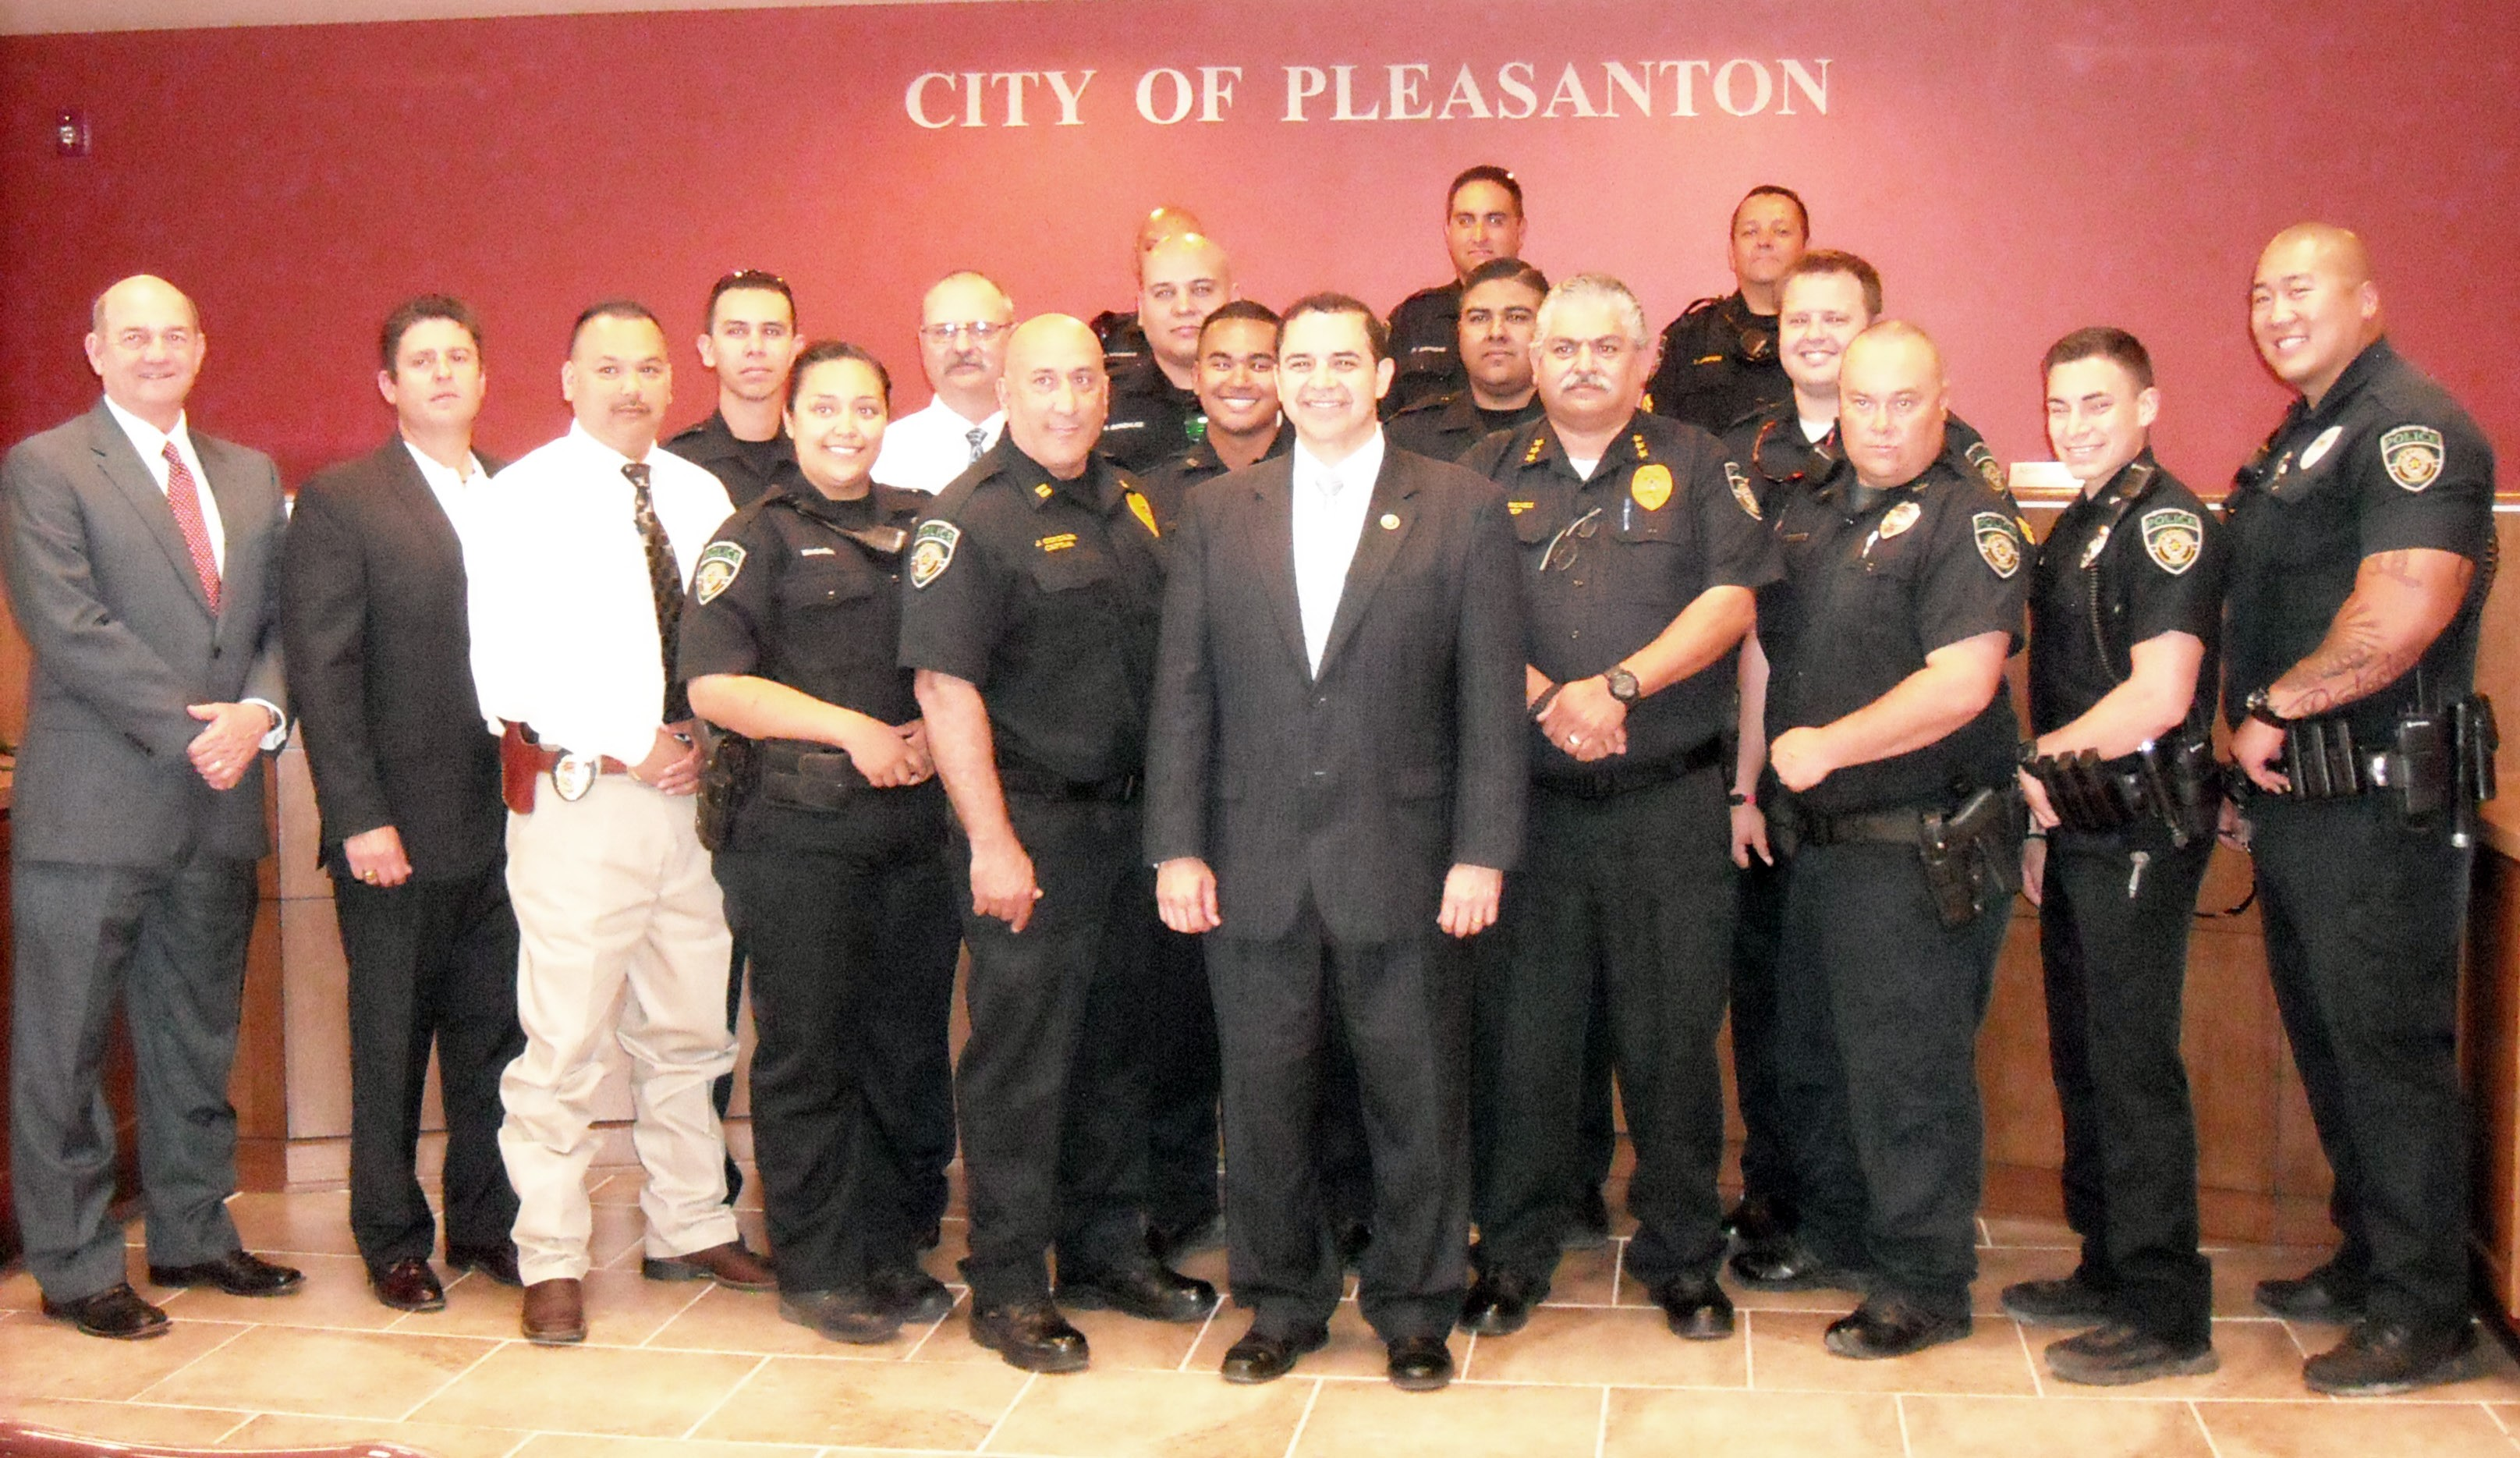 U.S. Congressman Henry Cuellar (center) visited with the Pleasanton Police Department while he was in town on Monday, May 11. He acknowledged the Pleasanton Police Department during National Police Week, commending them on a job well done. Back Row: Officer Damian Balderas, Officer Daniel Zertuche and Sgt. David Jimenez. Middle Row: Officer Anastacio Perez, Lt. Jimmie Cole, Officer Anthony Gonzalez, Officer Justin Granado and Sgt. Pierce Ruple. Front Row: City Manager Bruce Pearson, Mayor Clinton J. Powell, Lt. Ernest Guerra, Officer Mari Magana, Captain Johnny Gonzales, Officer Kai Viesca, Chief Ronald Sanchez, Officer Jordan Haren, Officer Andre Vargas, Officer Tzu-Chi Chia